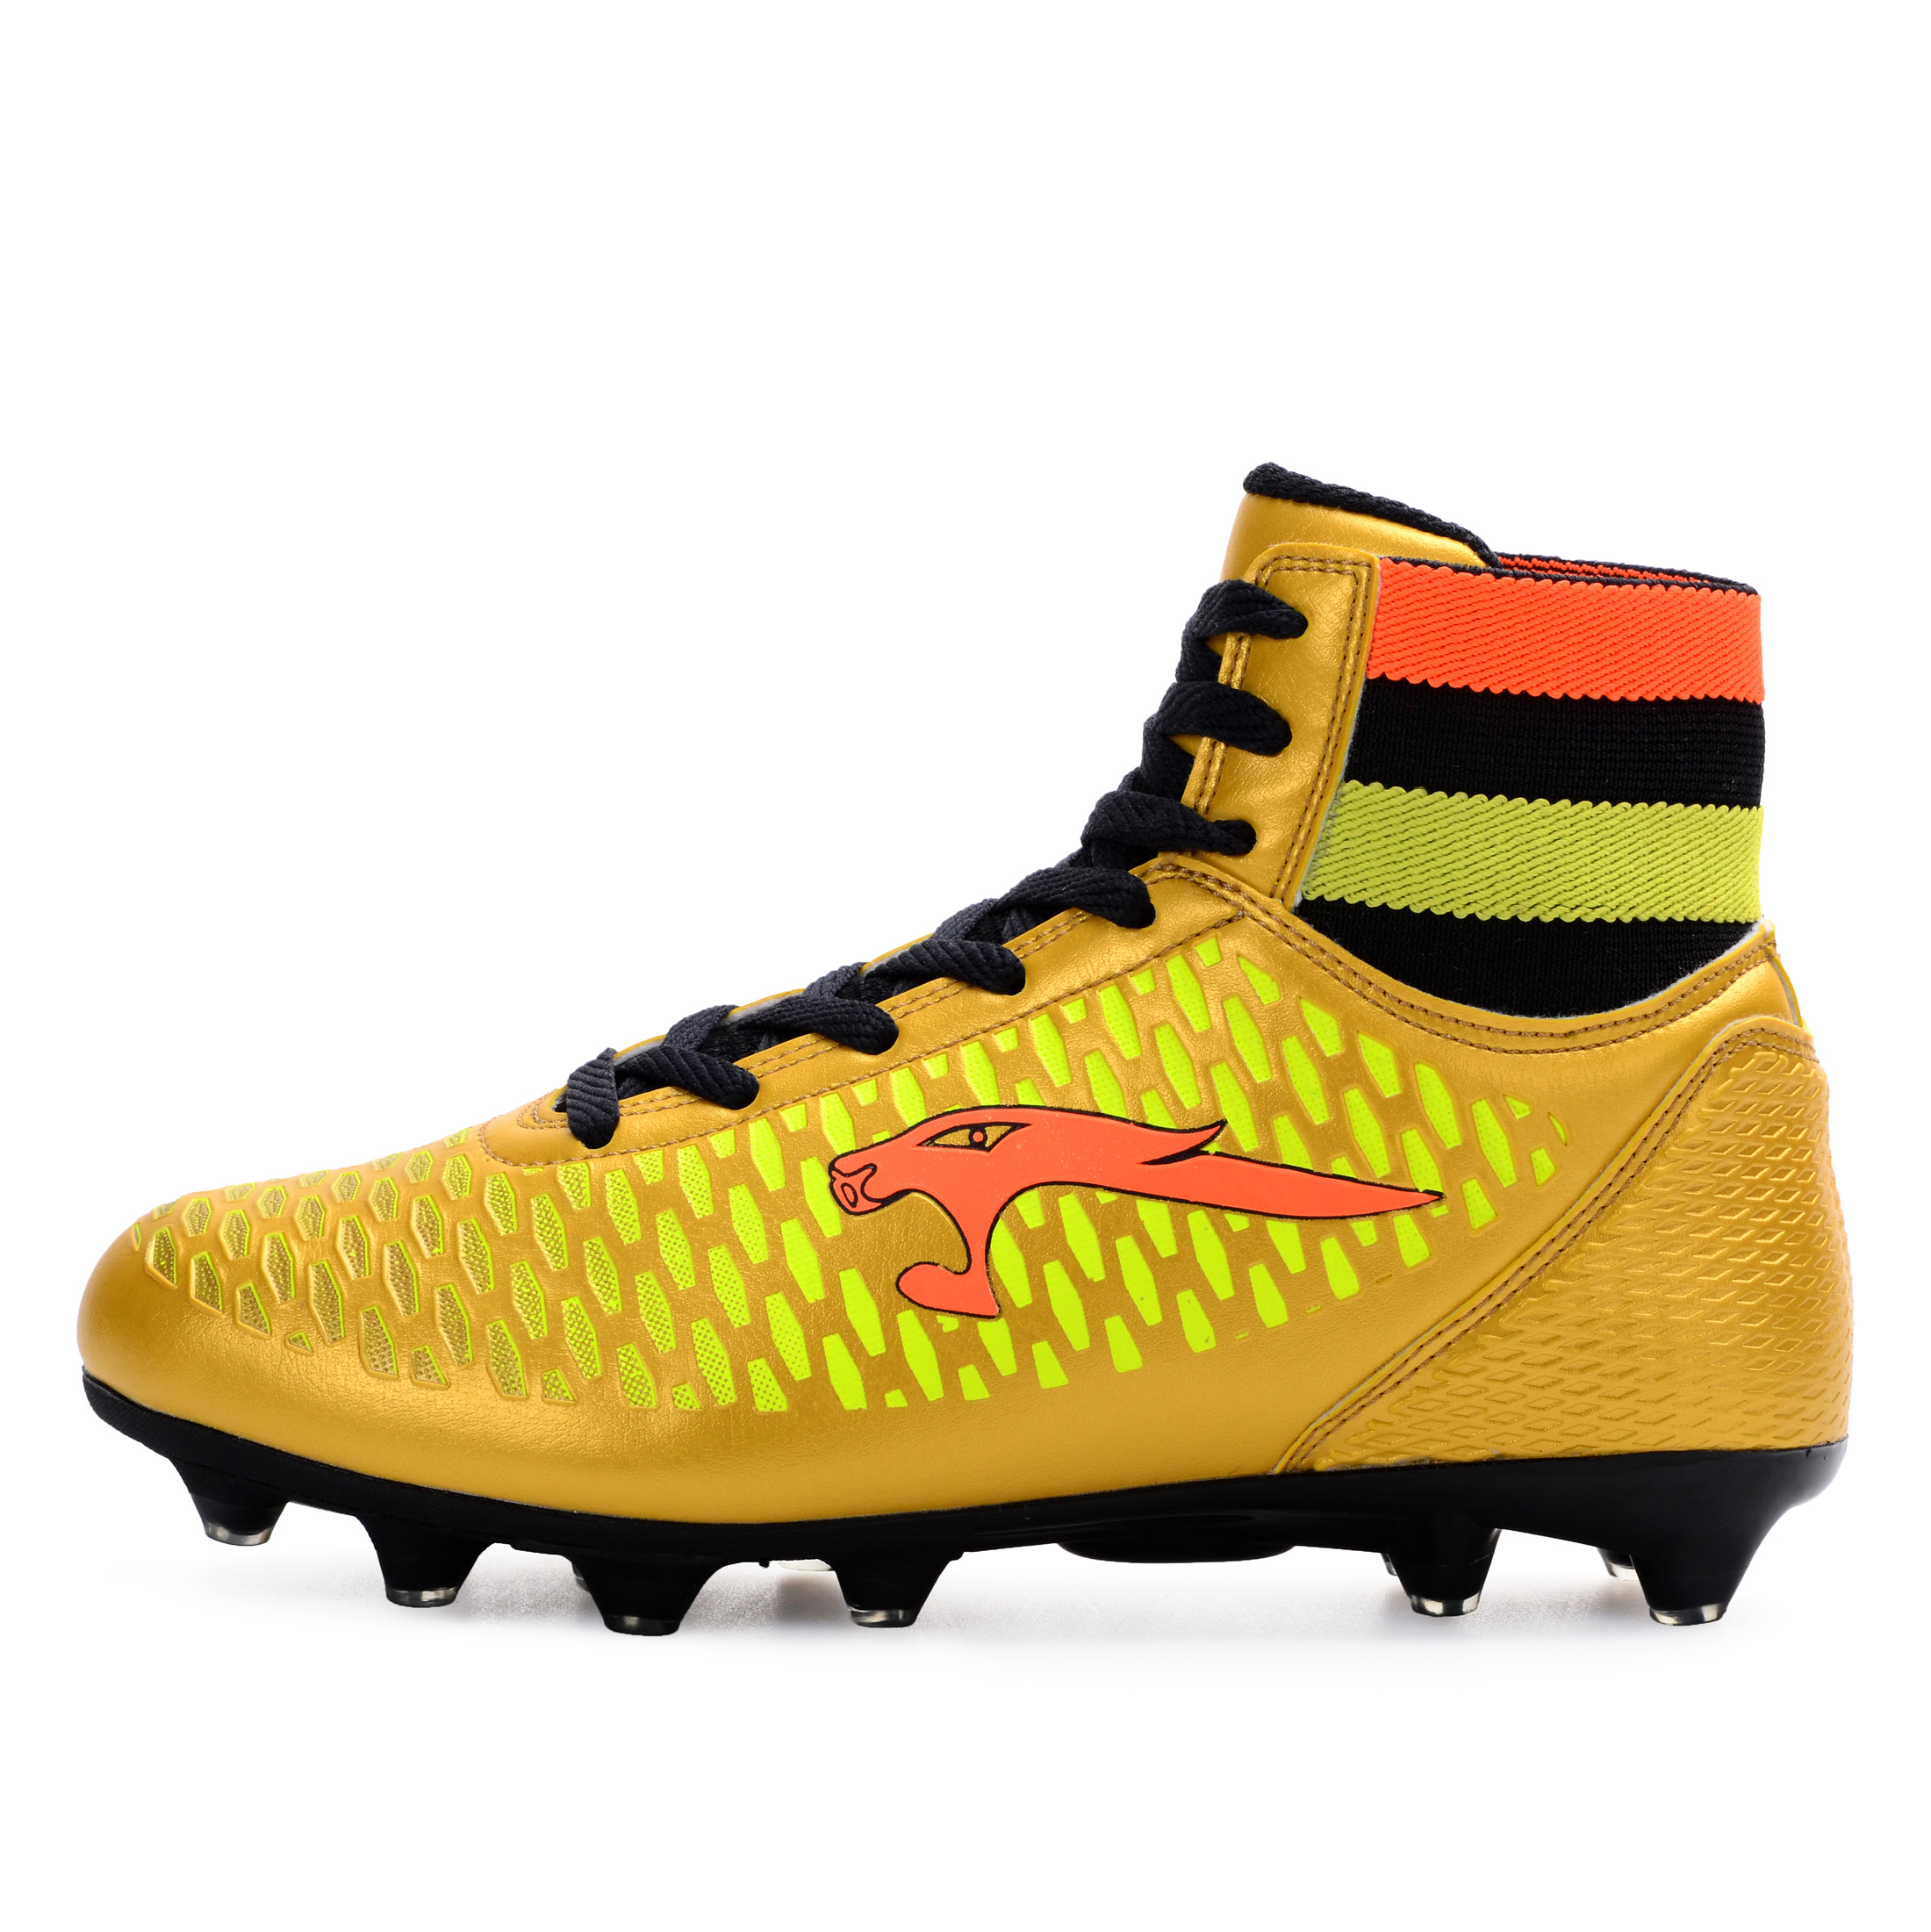 0c738ea8e6d4 High Top Soccer Cleats Men Shoes Leather Soccer Boys Football Boots High  Ankle Cheap 2016 Men High Ankle Original Football Boot | Waterproofware  Reviews